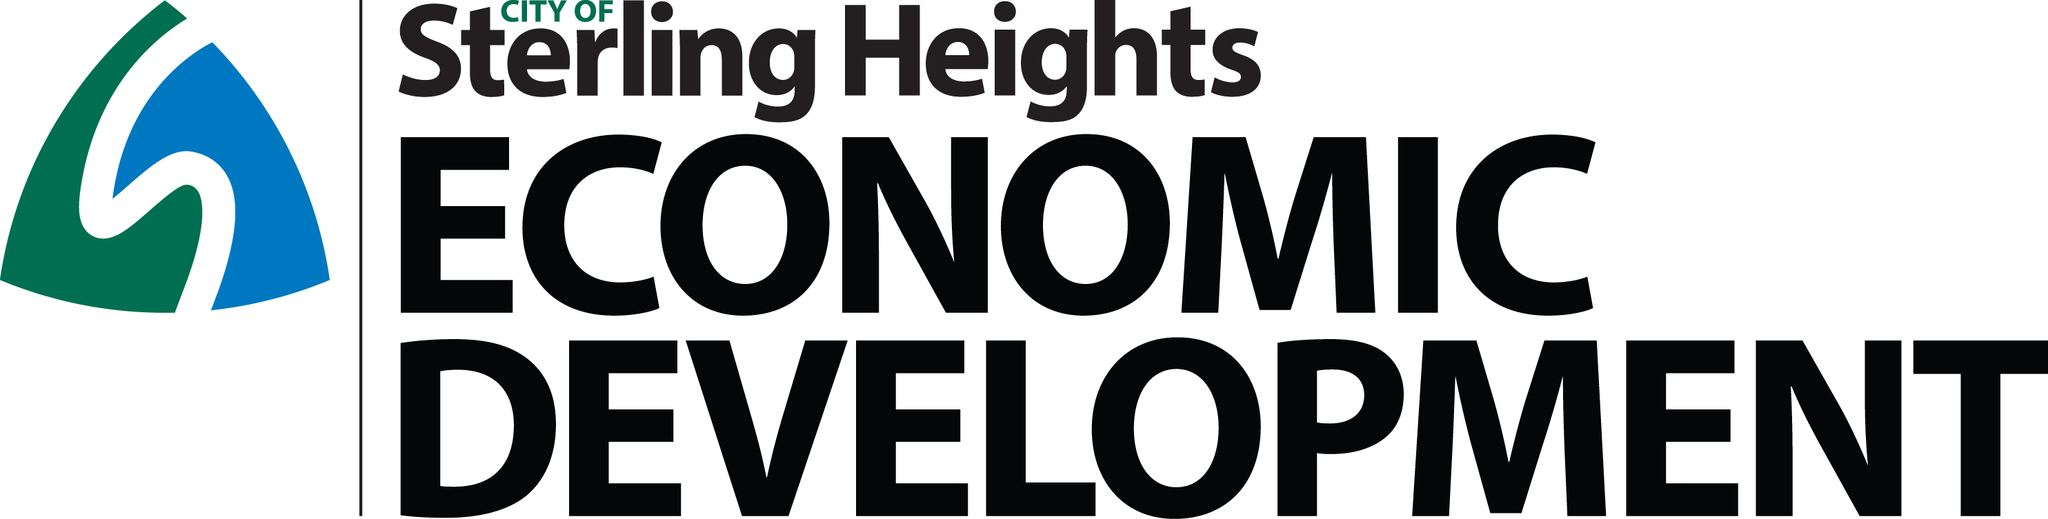 Sterling Heights Economic Development